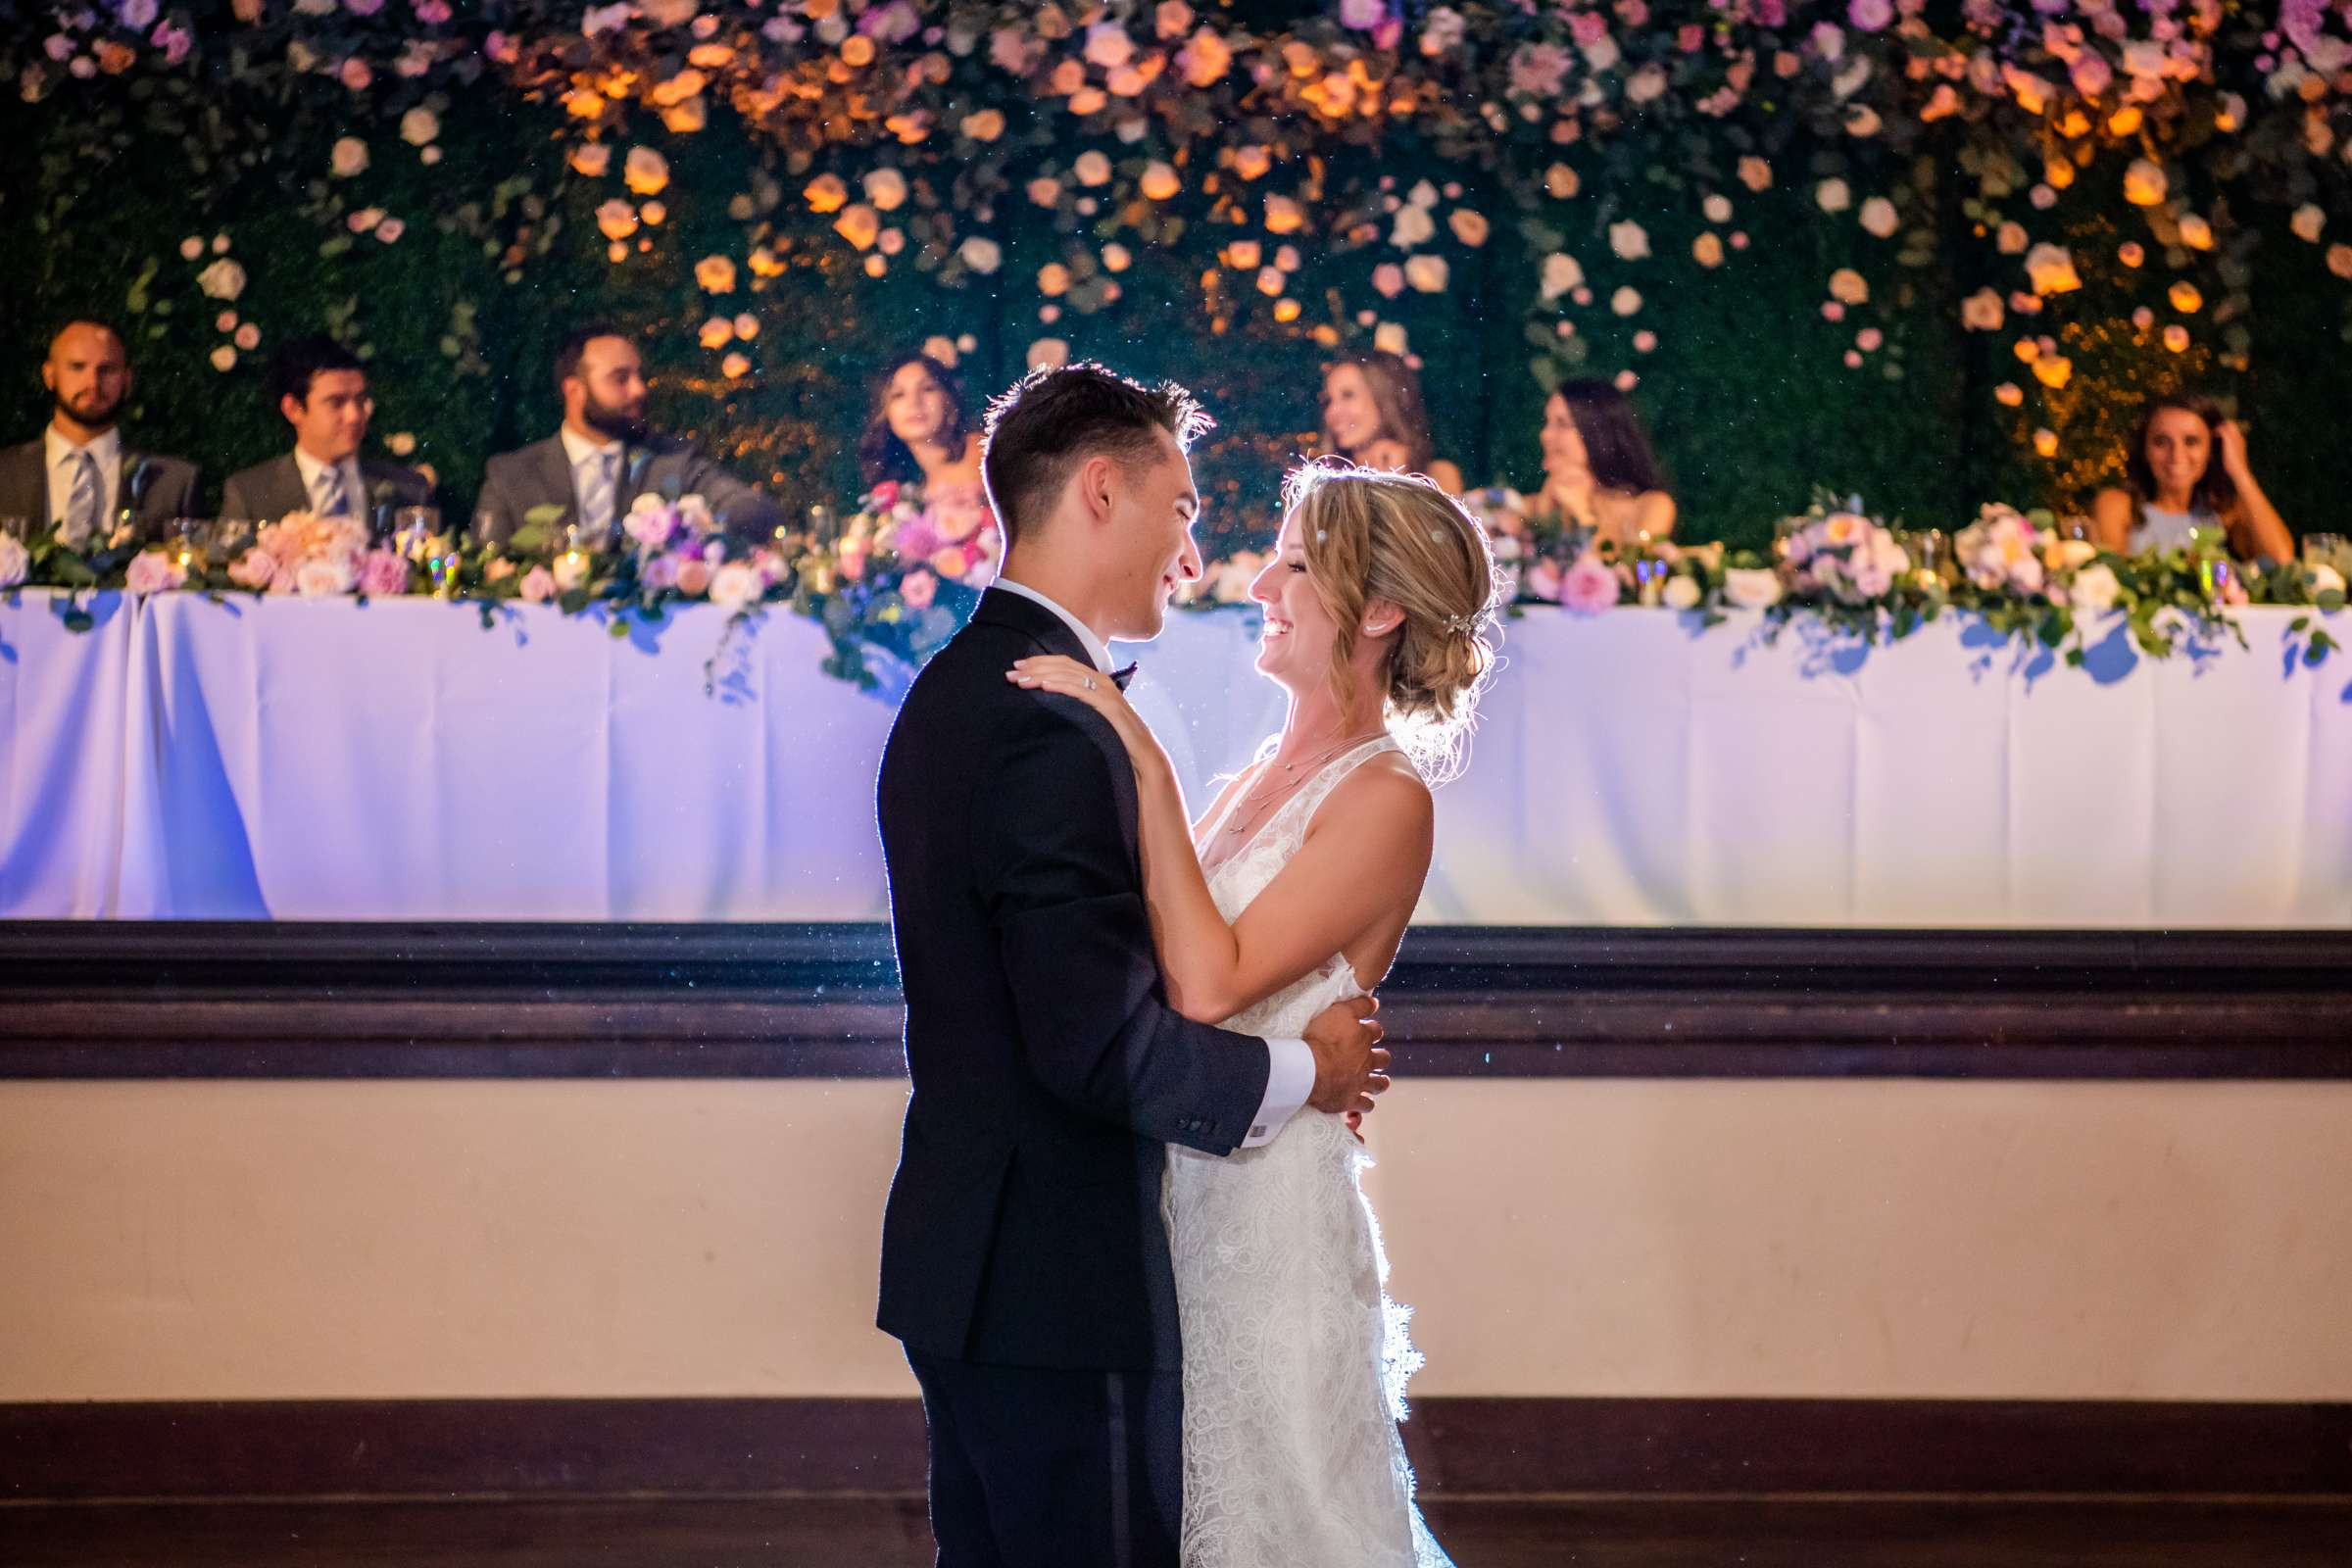 The Prado Wedding coordinated by Bliss Events, Sara and Marvin Wedding Photo #559627 by True Photography